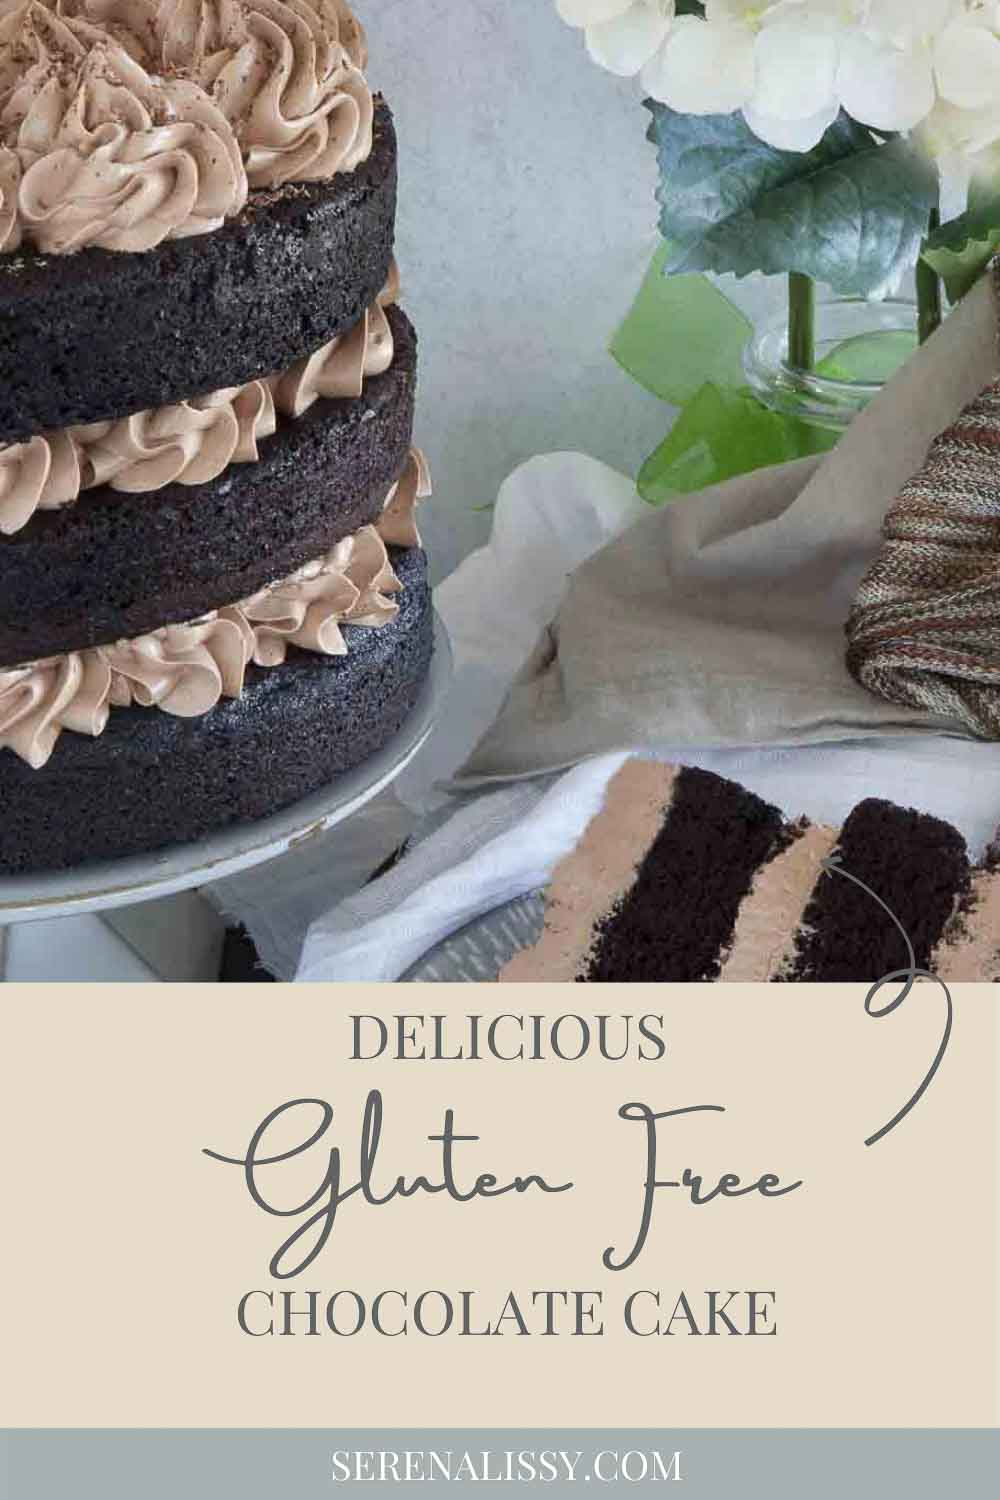 Completed Gluten Free Chocolate Cake on Cake Stand